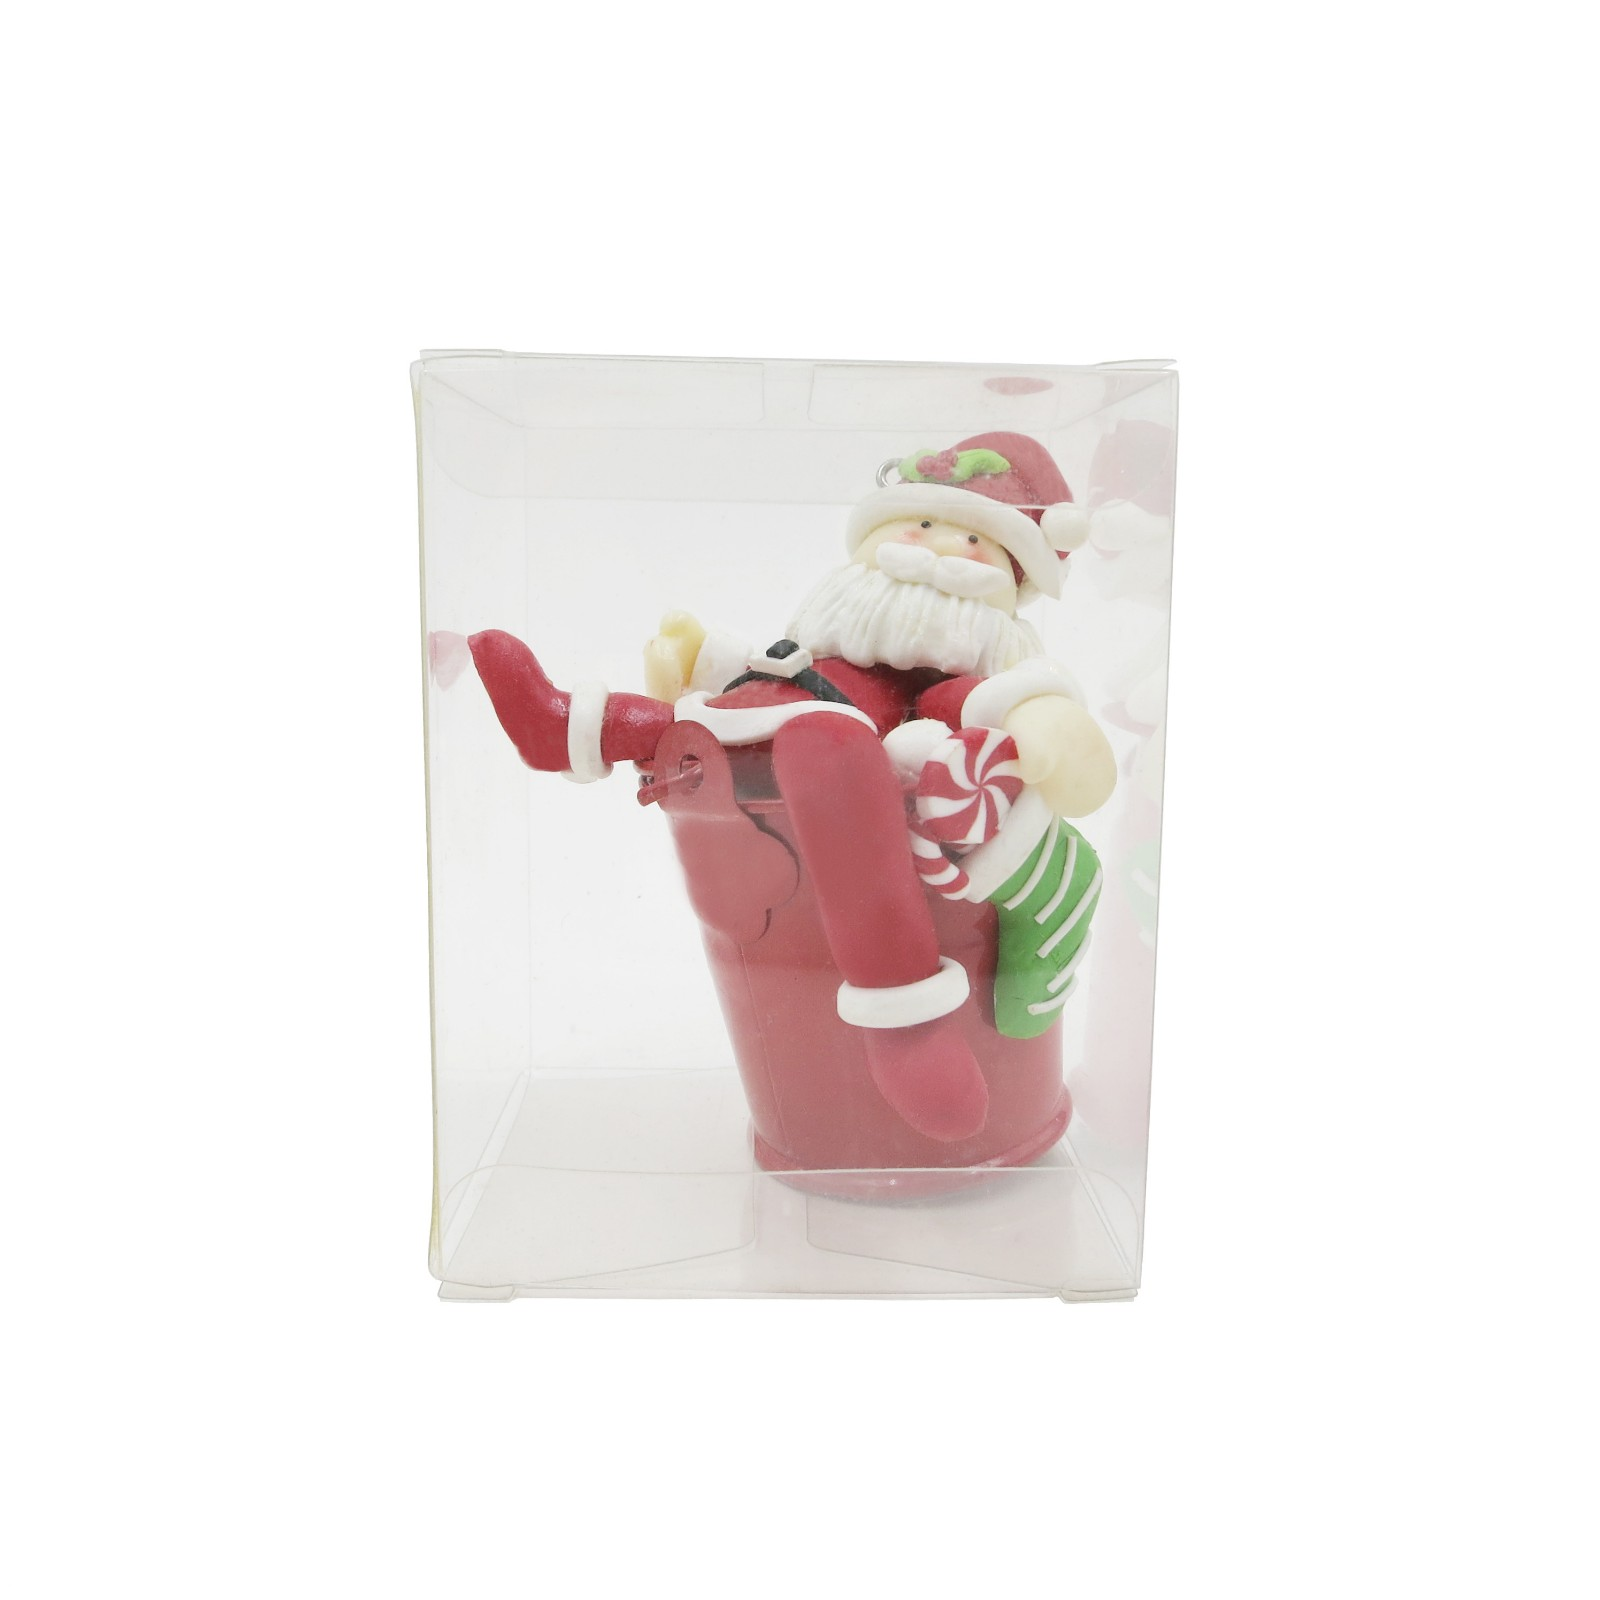 Yijianxing Plastic Products tab clear pvc plastic boxes for wholesale for cups-1